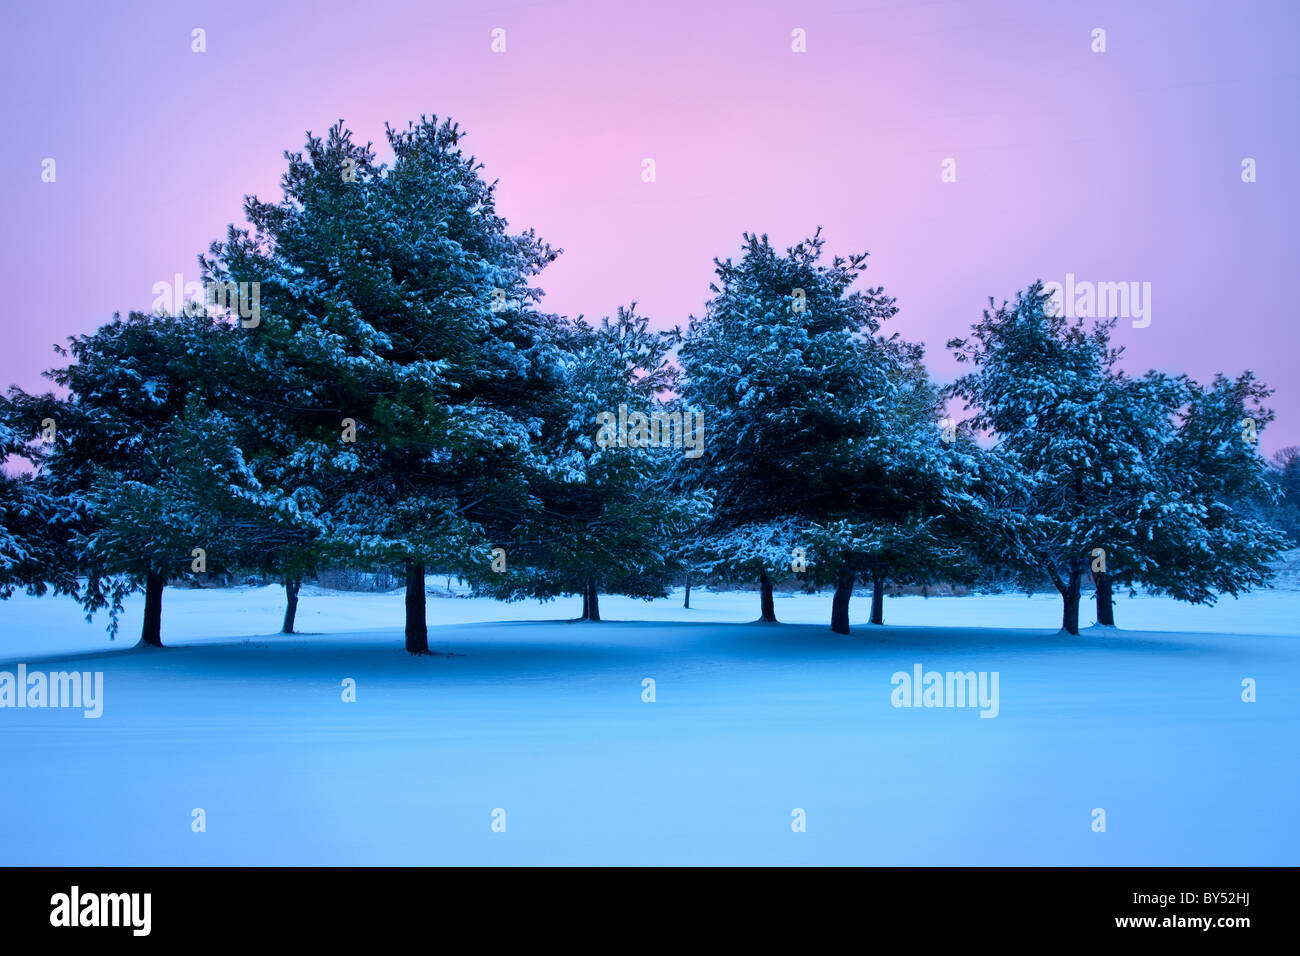 Line of snowy trees on a wintry evening, Brentwood Tennessee, USA - Stock Image